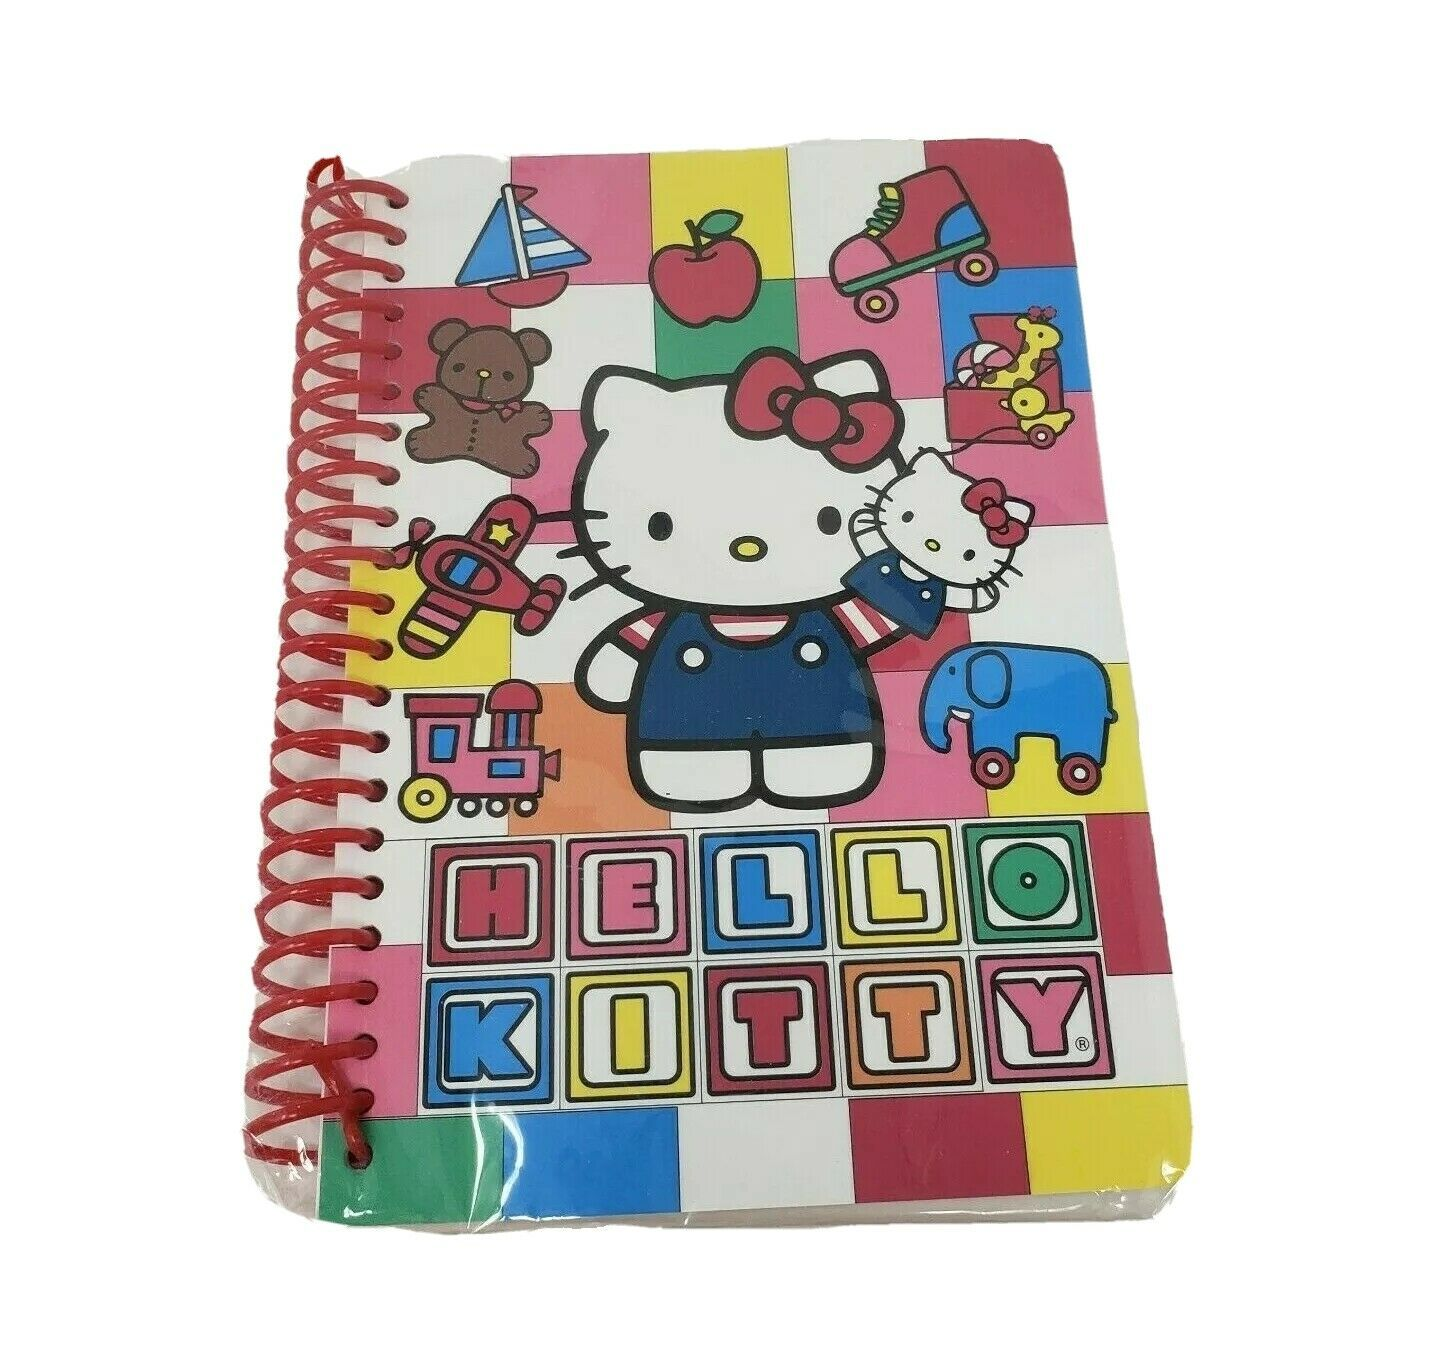 NEW IN PACKAGE SANRIO HELLO KITTY 40 SHEET JOURNAL 2010 SPIRAL NOTEBOOK BOOK - $18.70